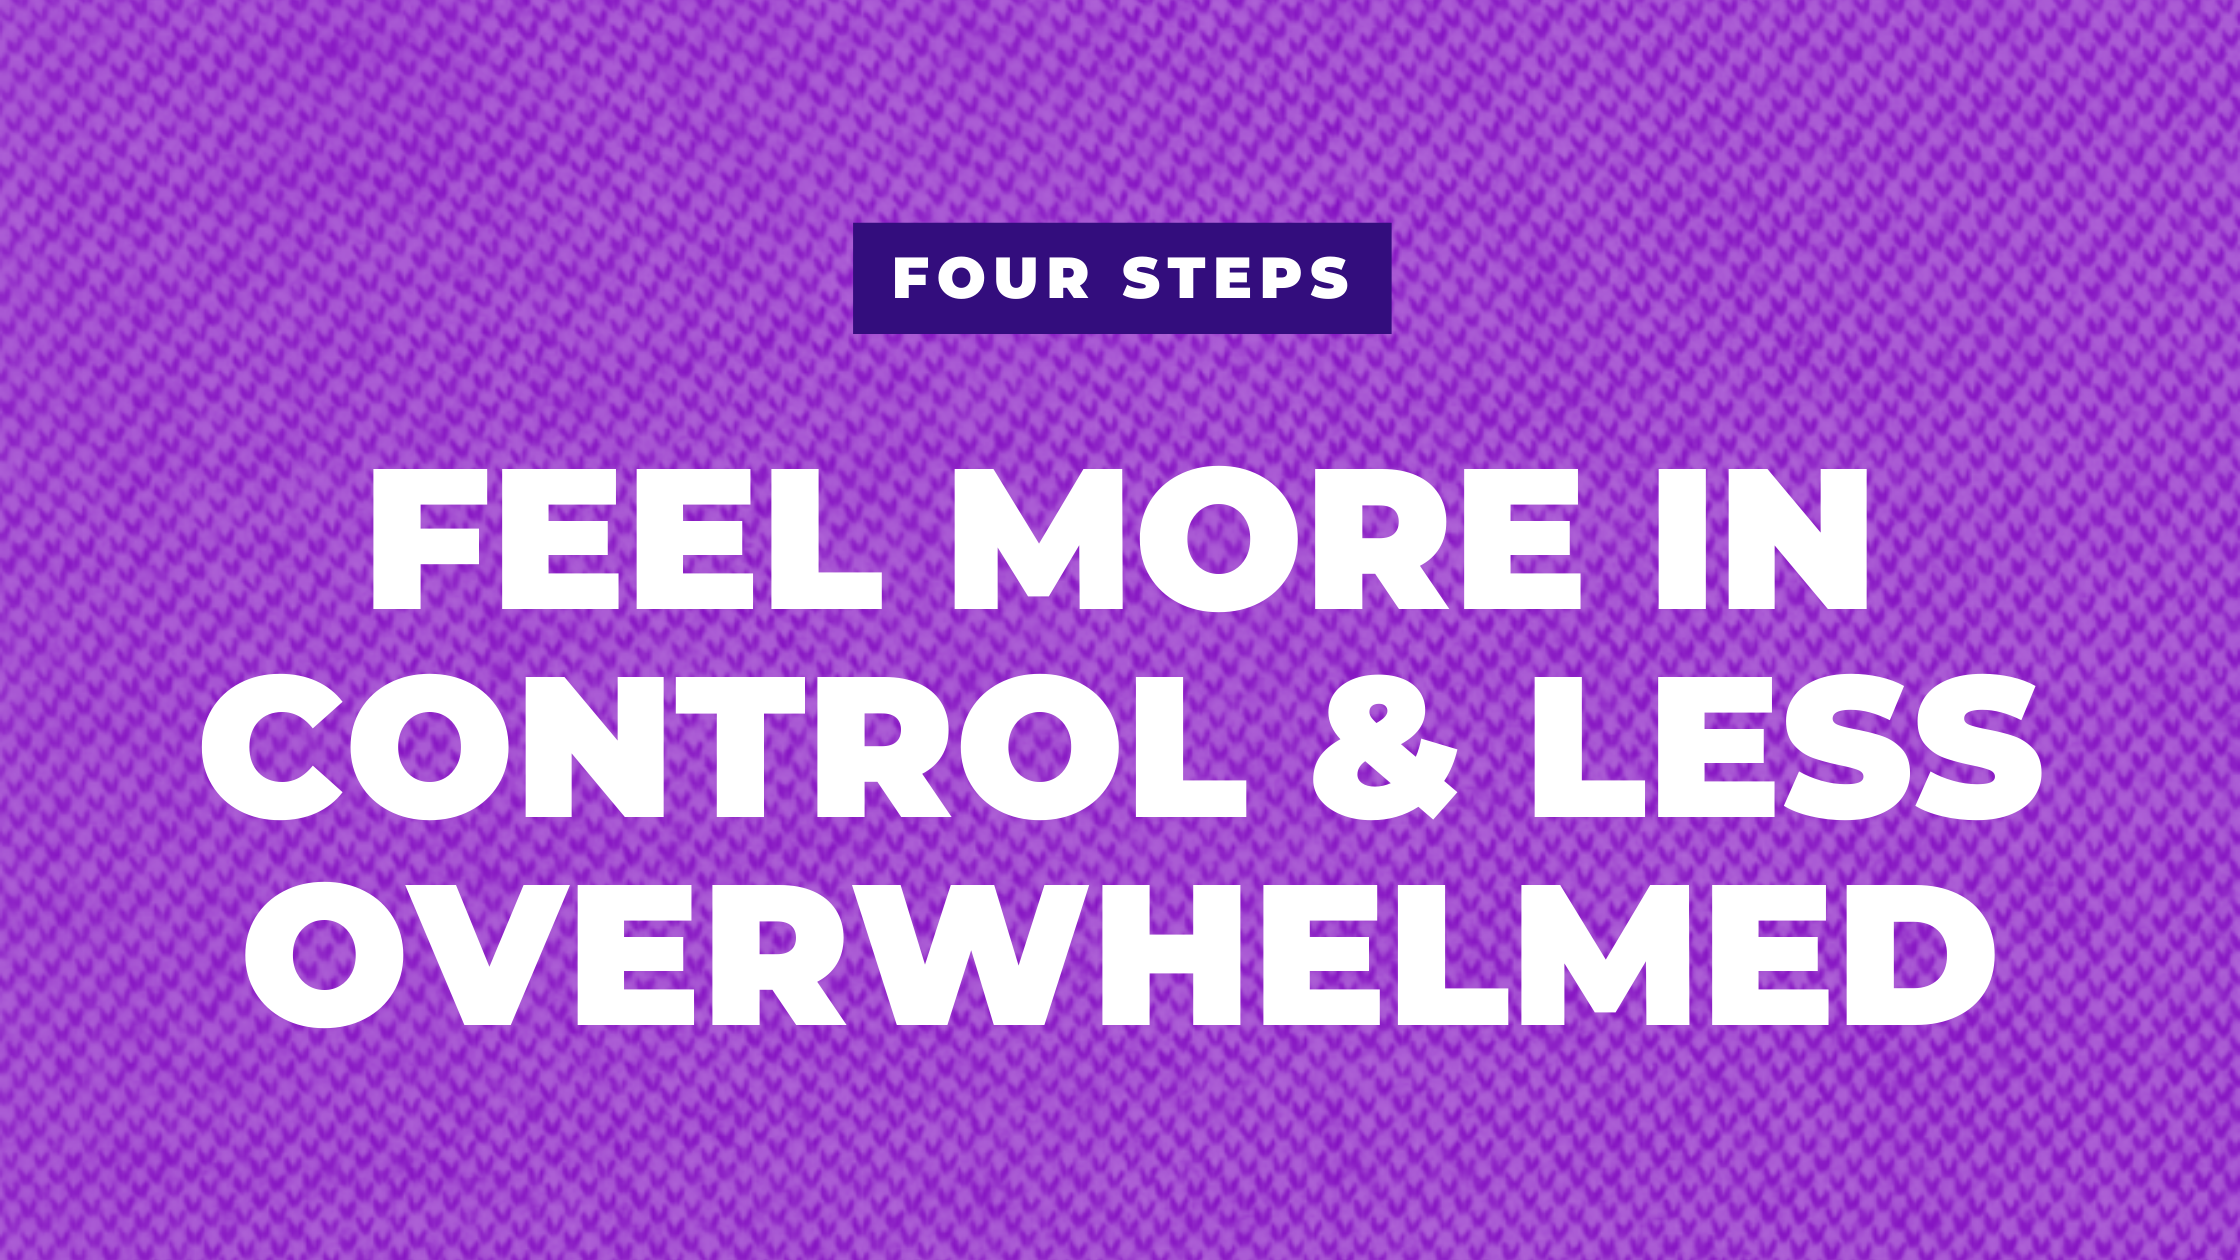 Feel more in control and less overwhelmed